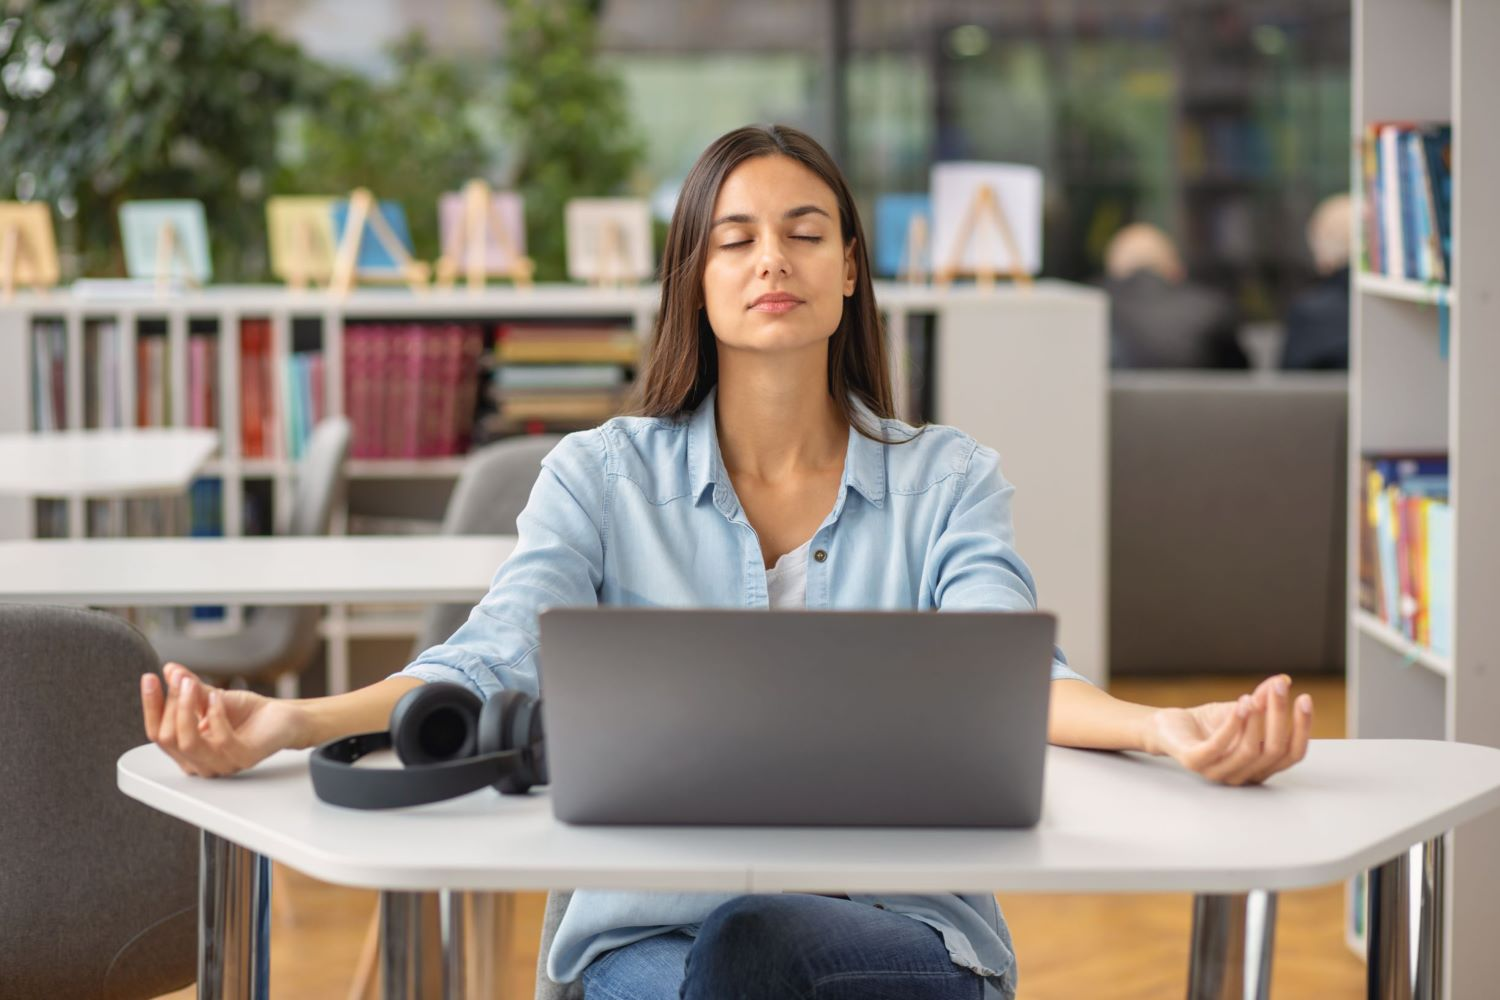 Woman in blue jeans and chambray shirt at desk with laptop and headphones, calmly practising desk yoga